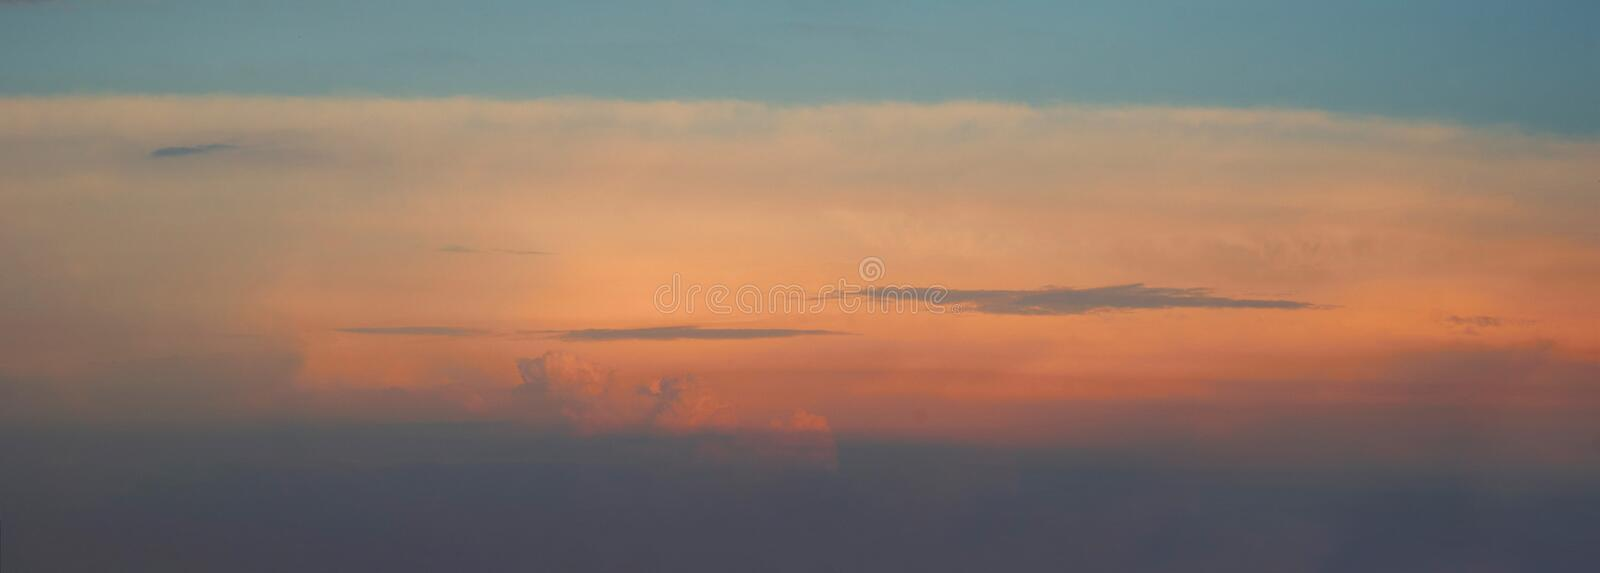 Evening sky with clouds in soft colors. Orange sky. Sunset royalty free stock images